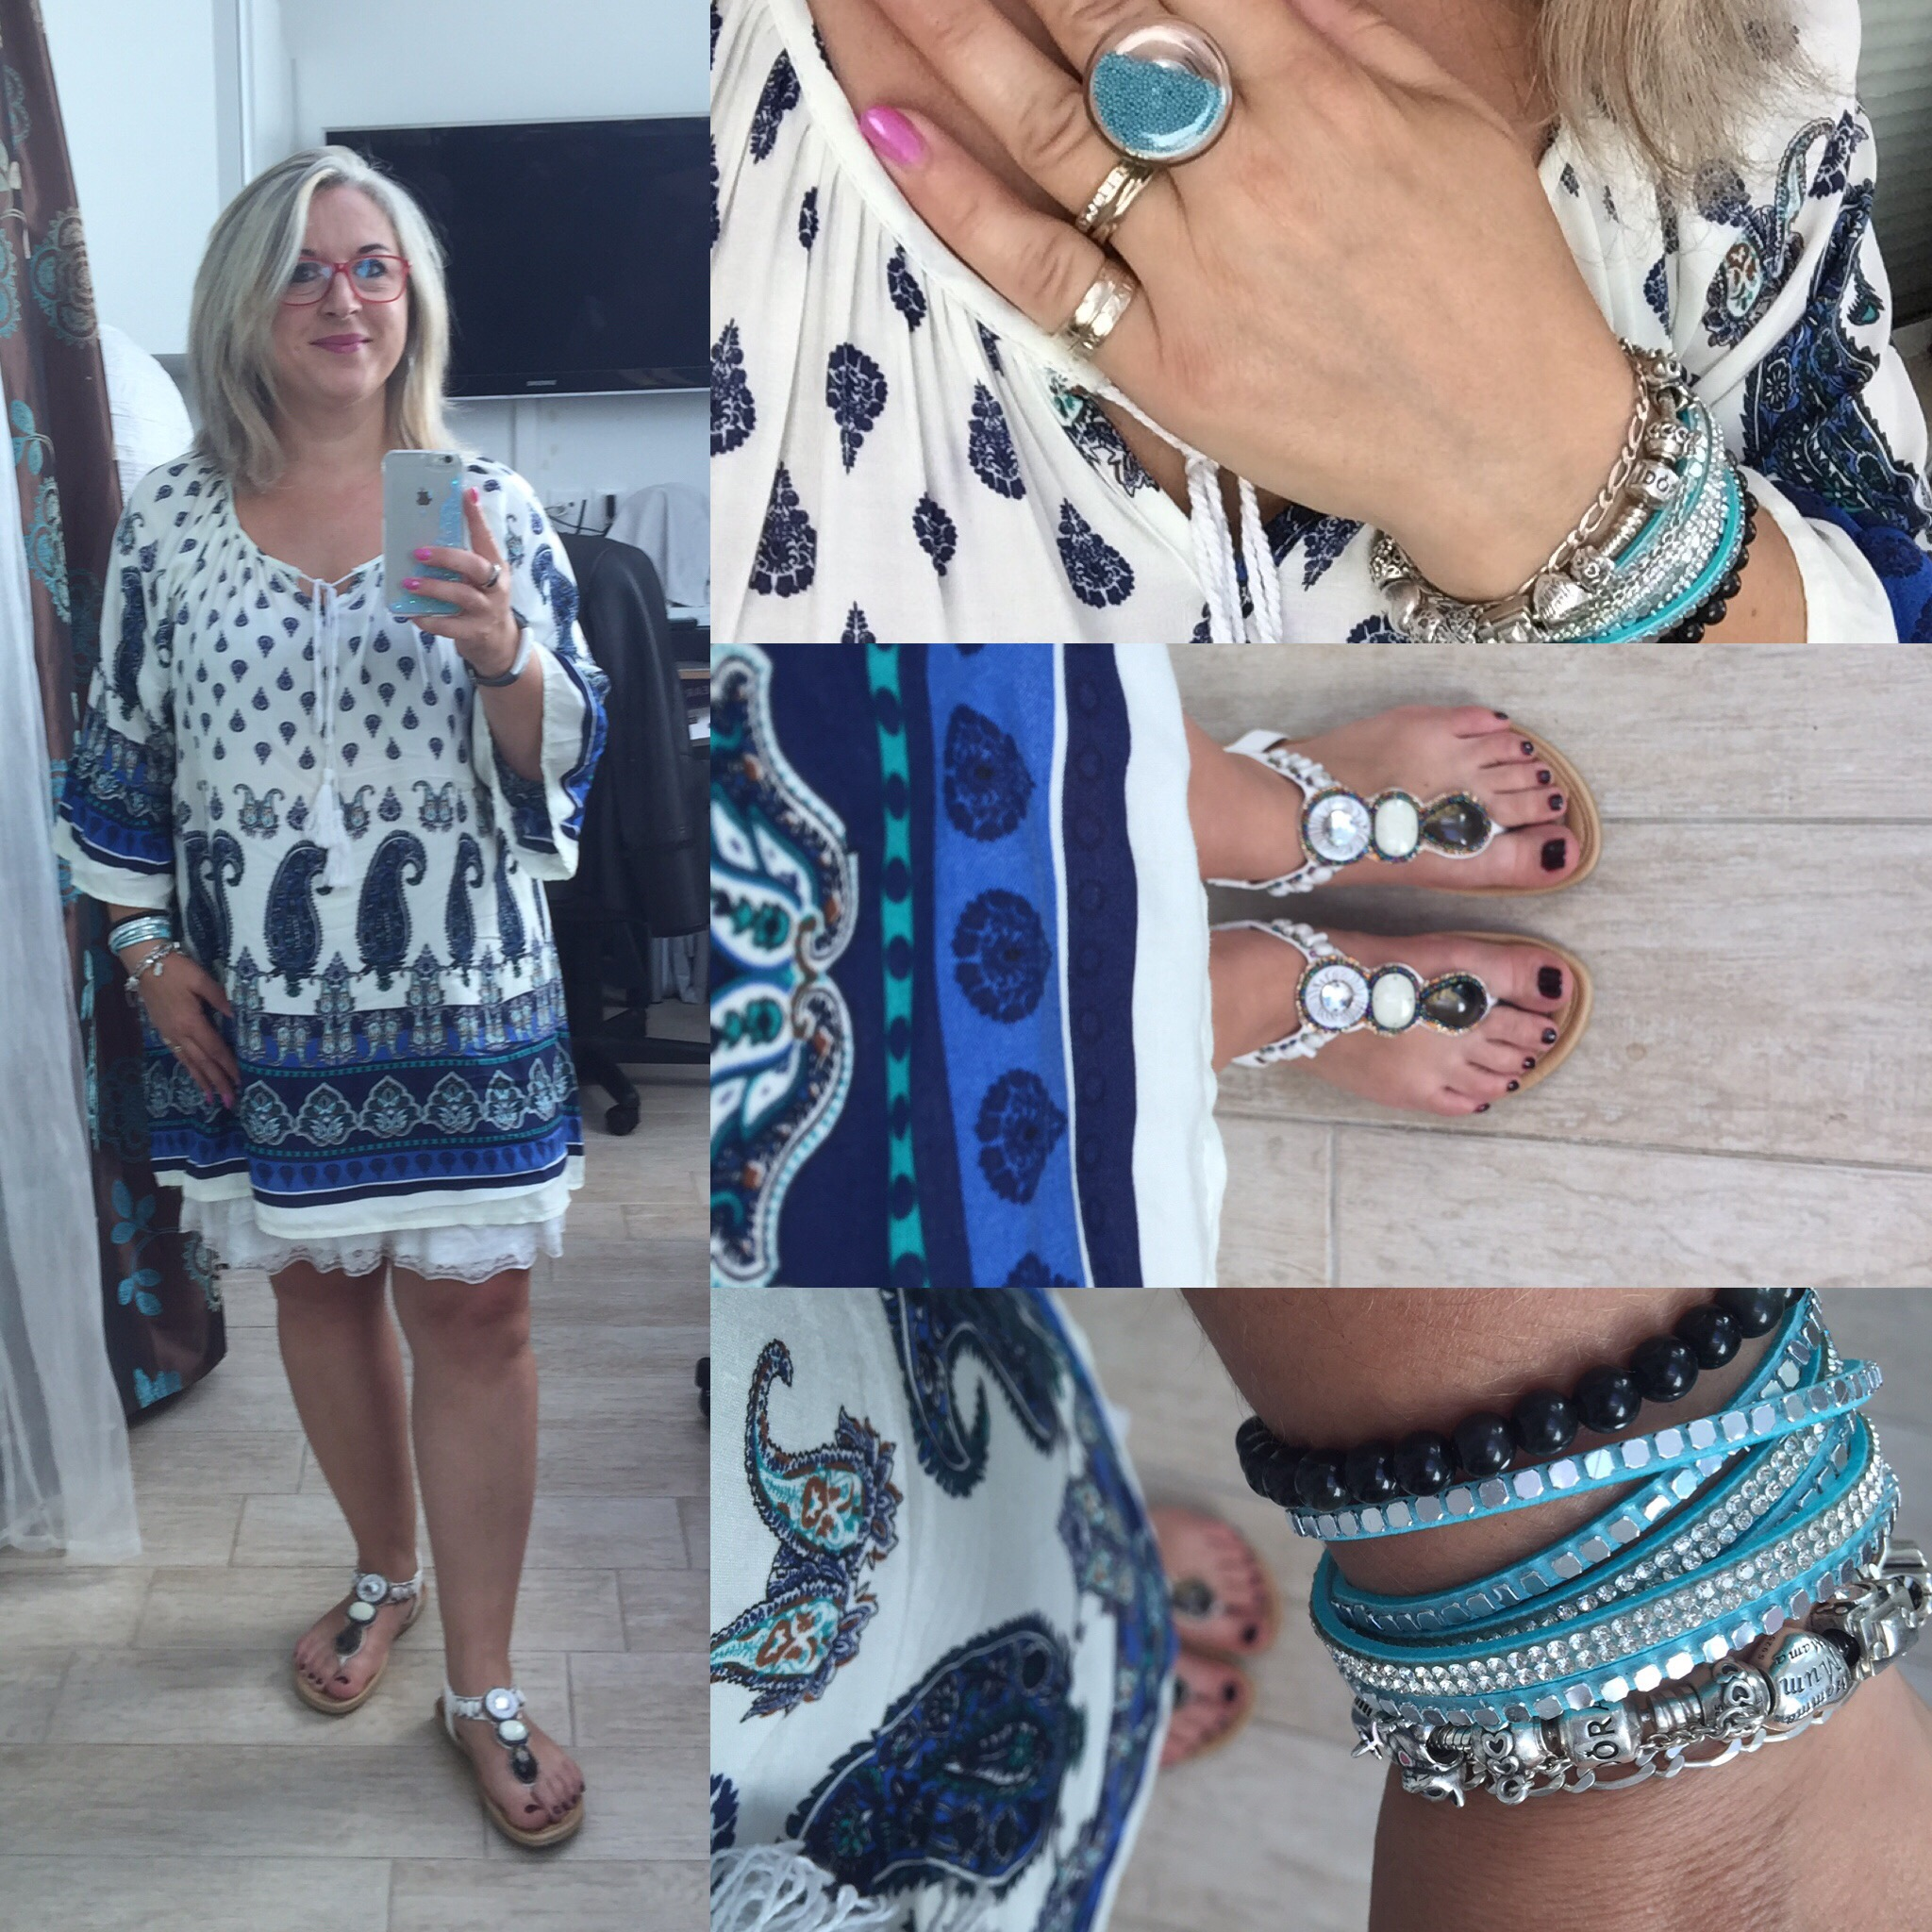 Idee look: style boho… Show must go on!